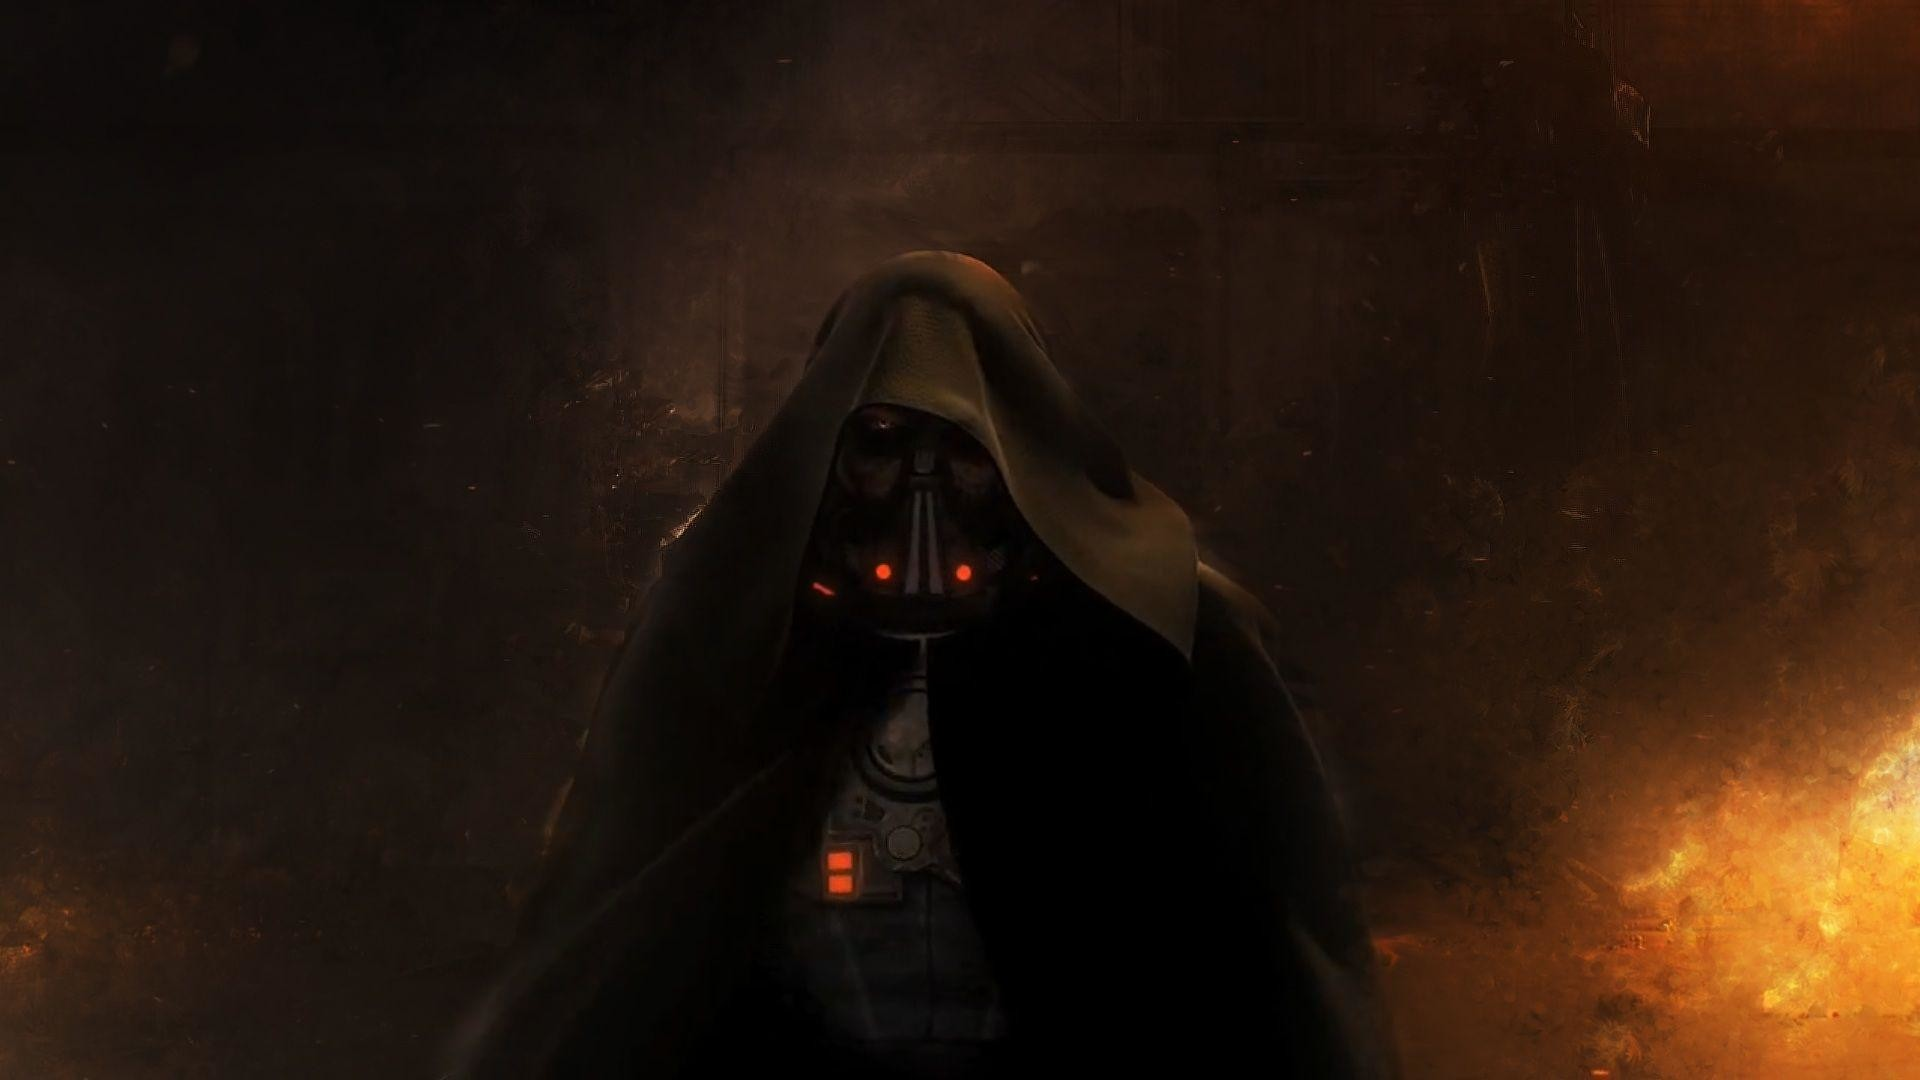 73 The Sith Code